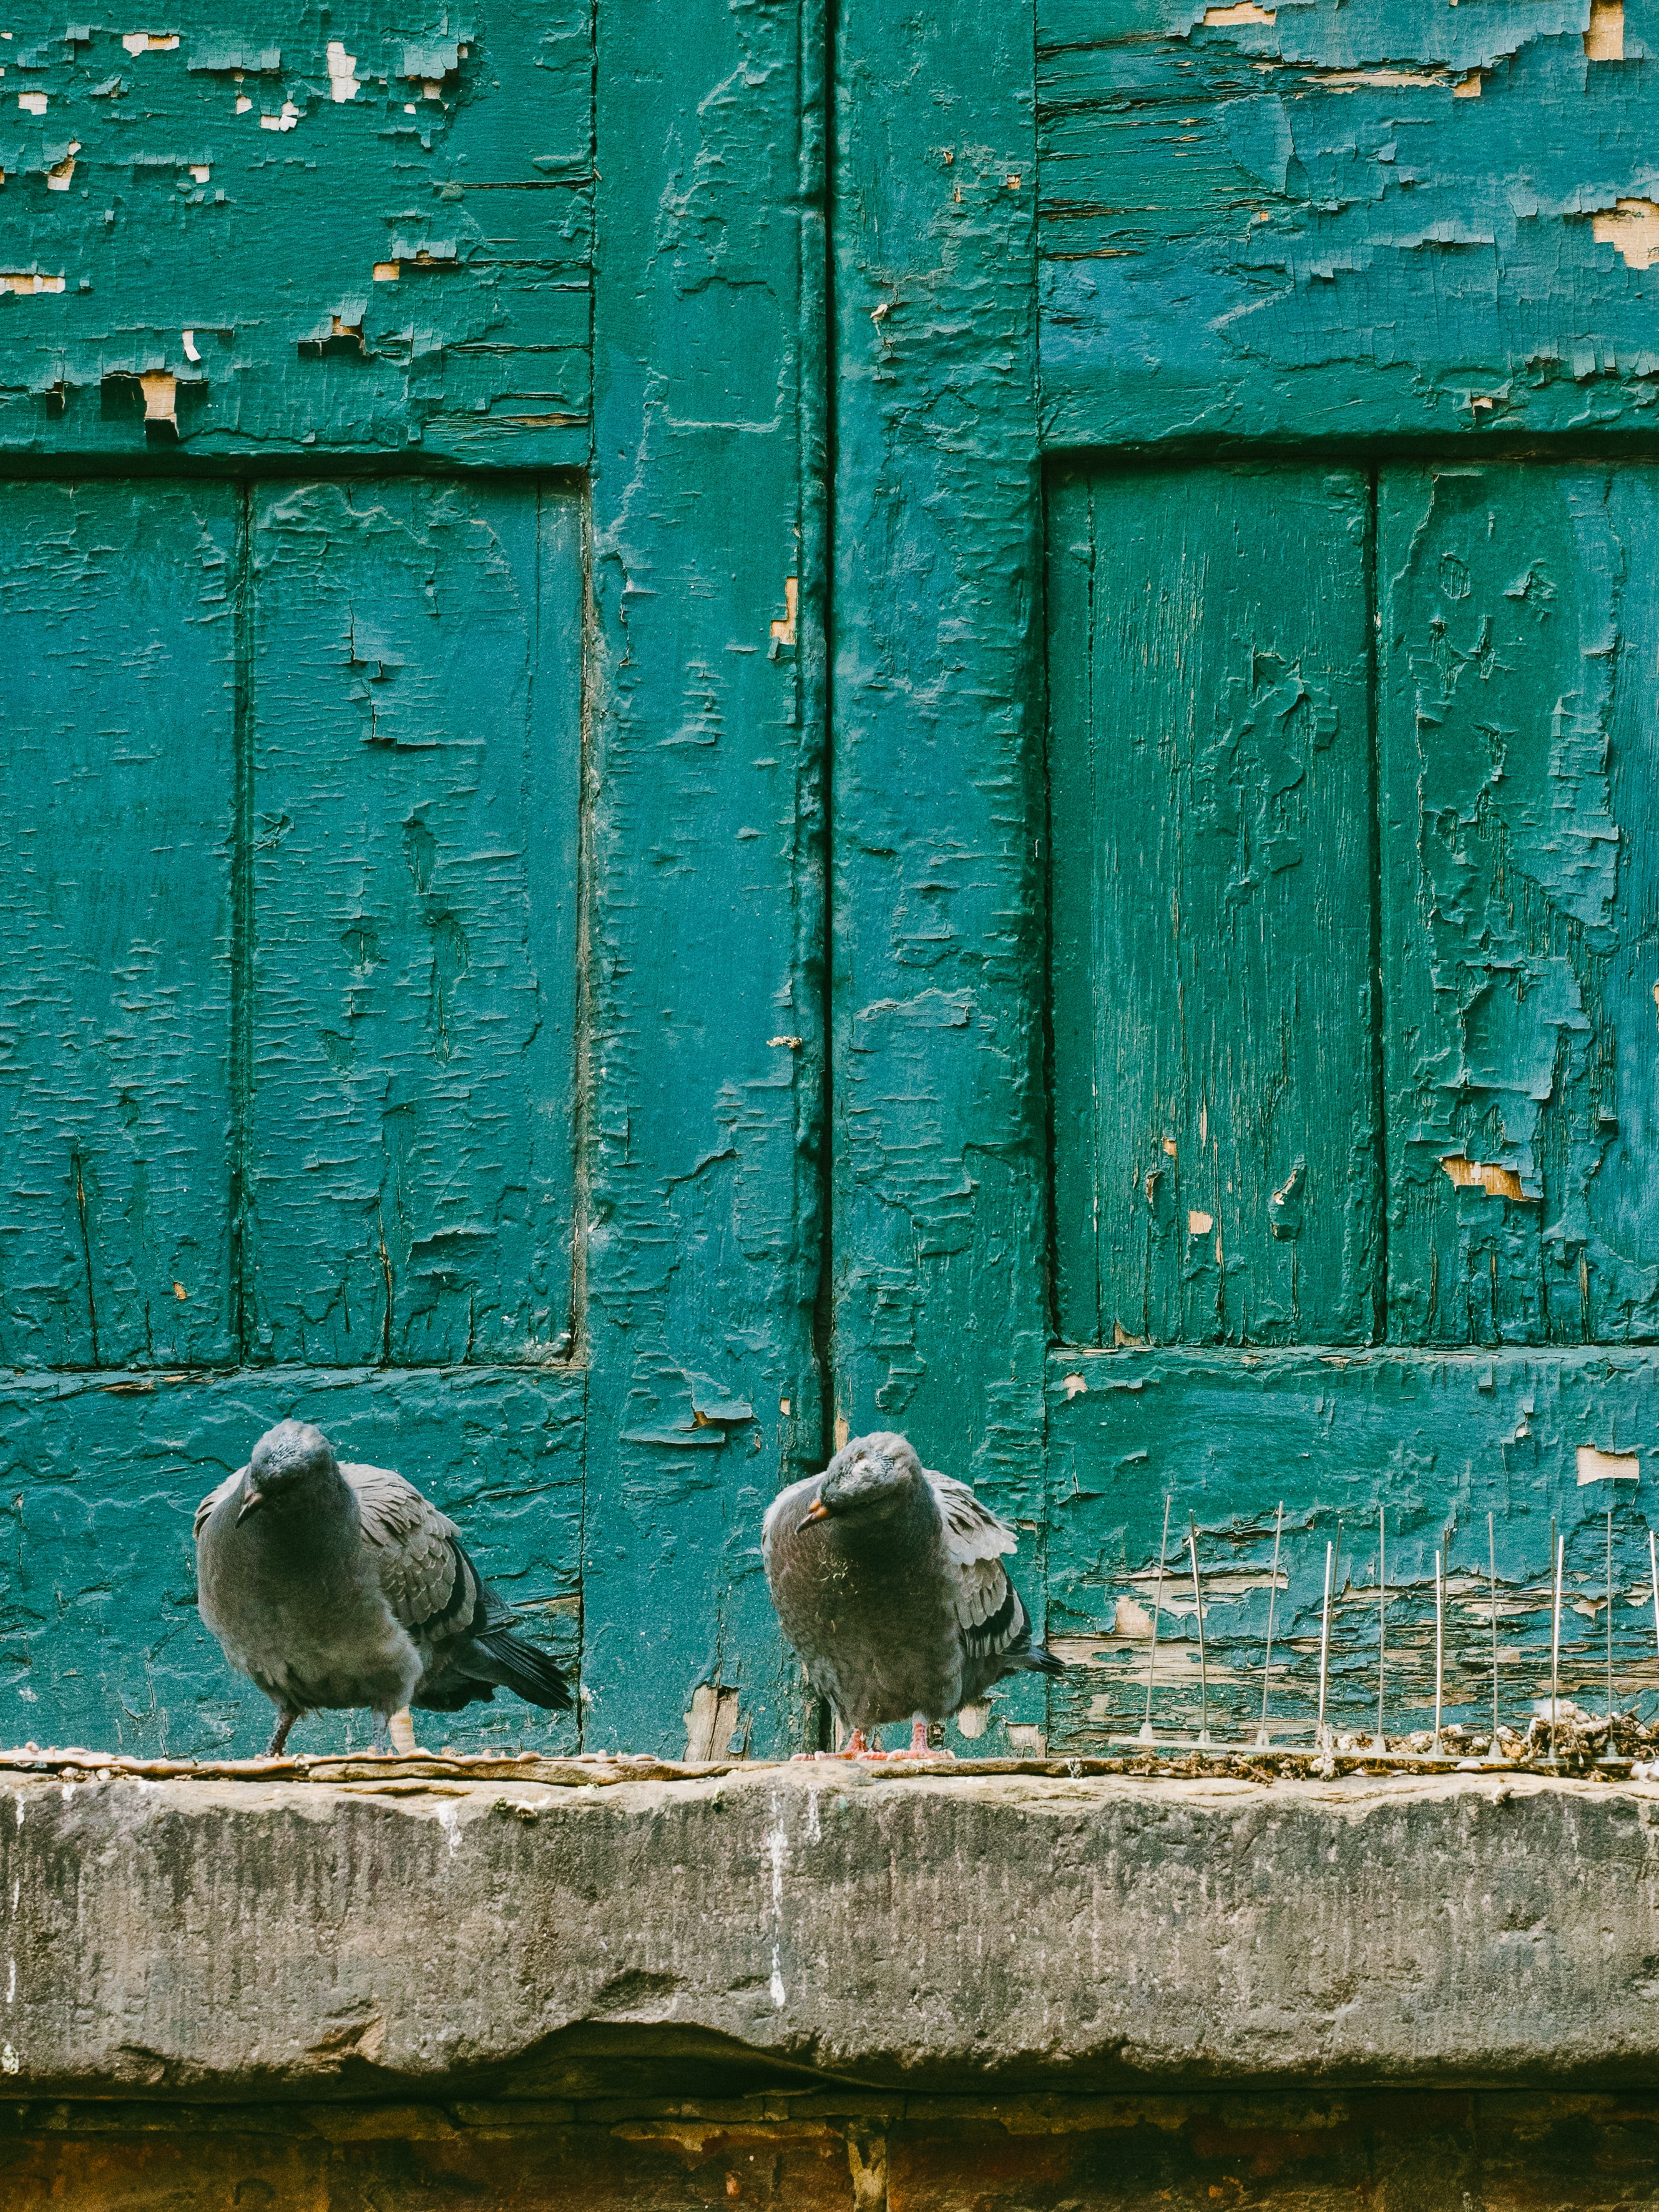 closeup photo of two gray pigeons on gray concrete surface